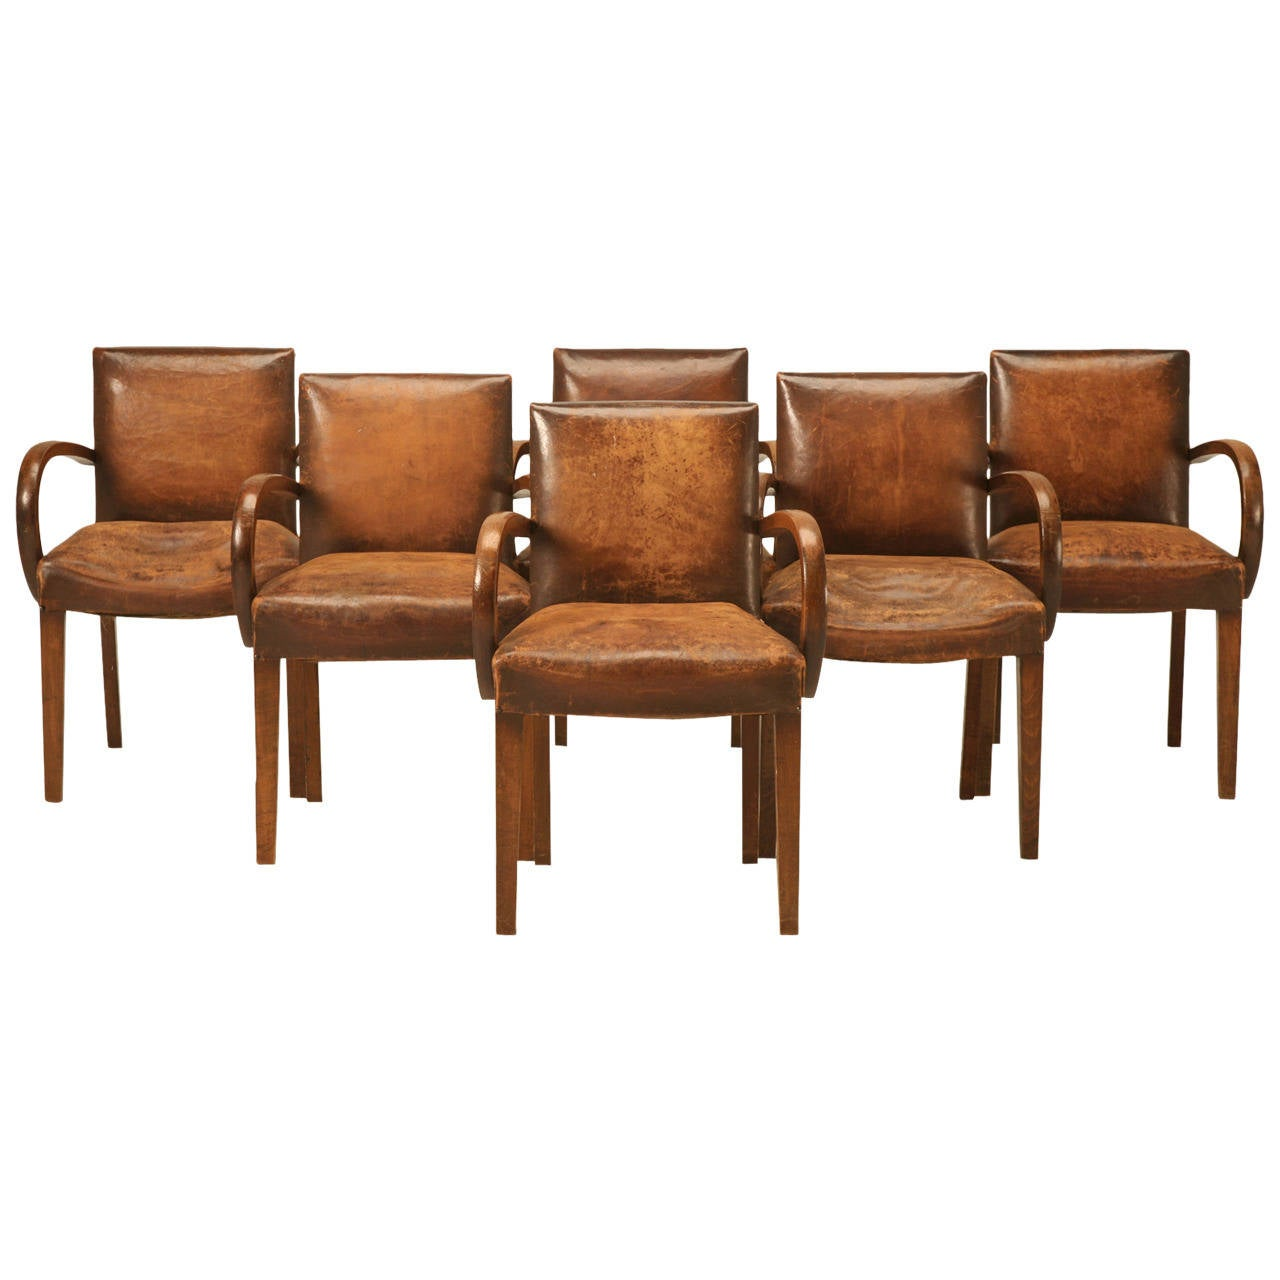 Super Comfy Chair Set Of 6 French Original Leather Super Comfortable Bridge